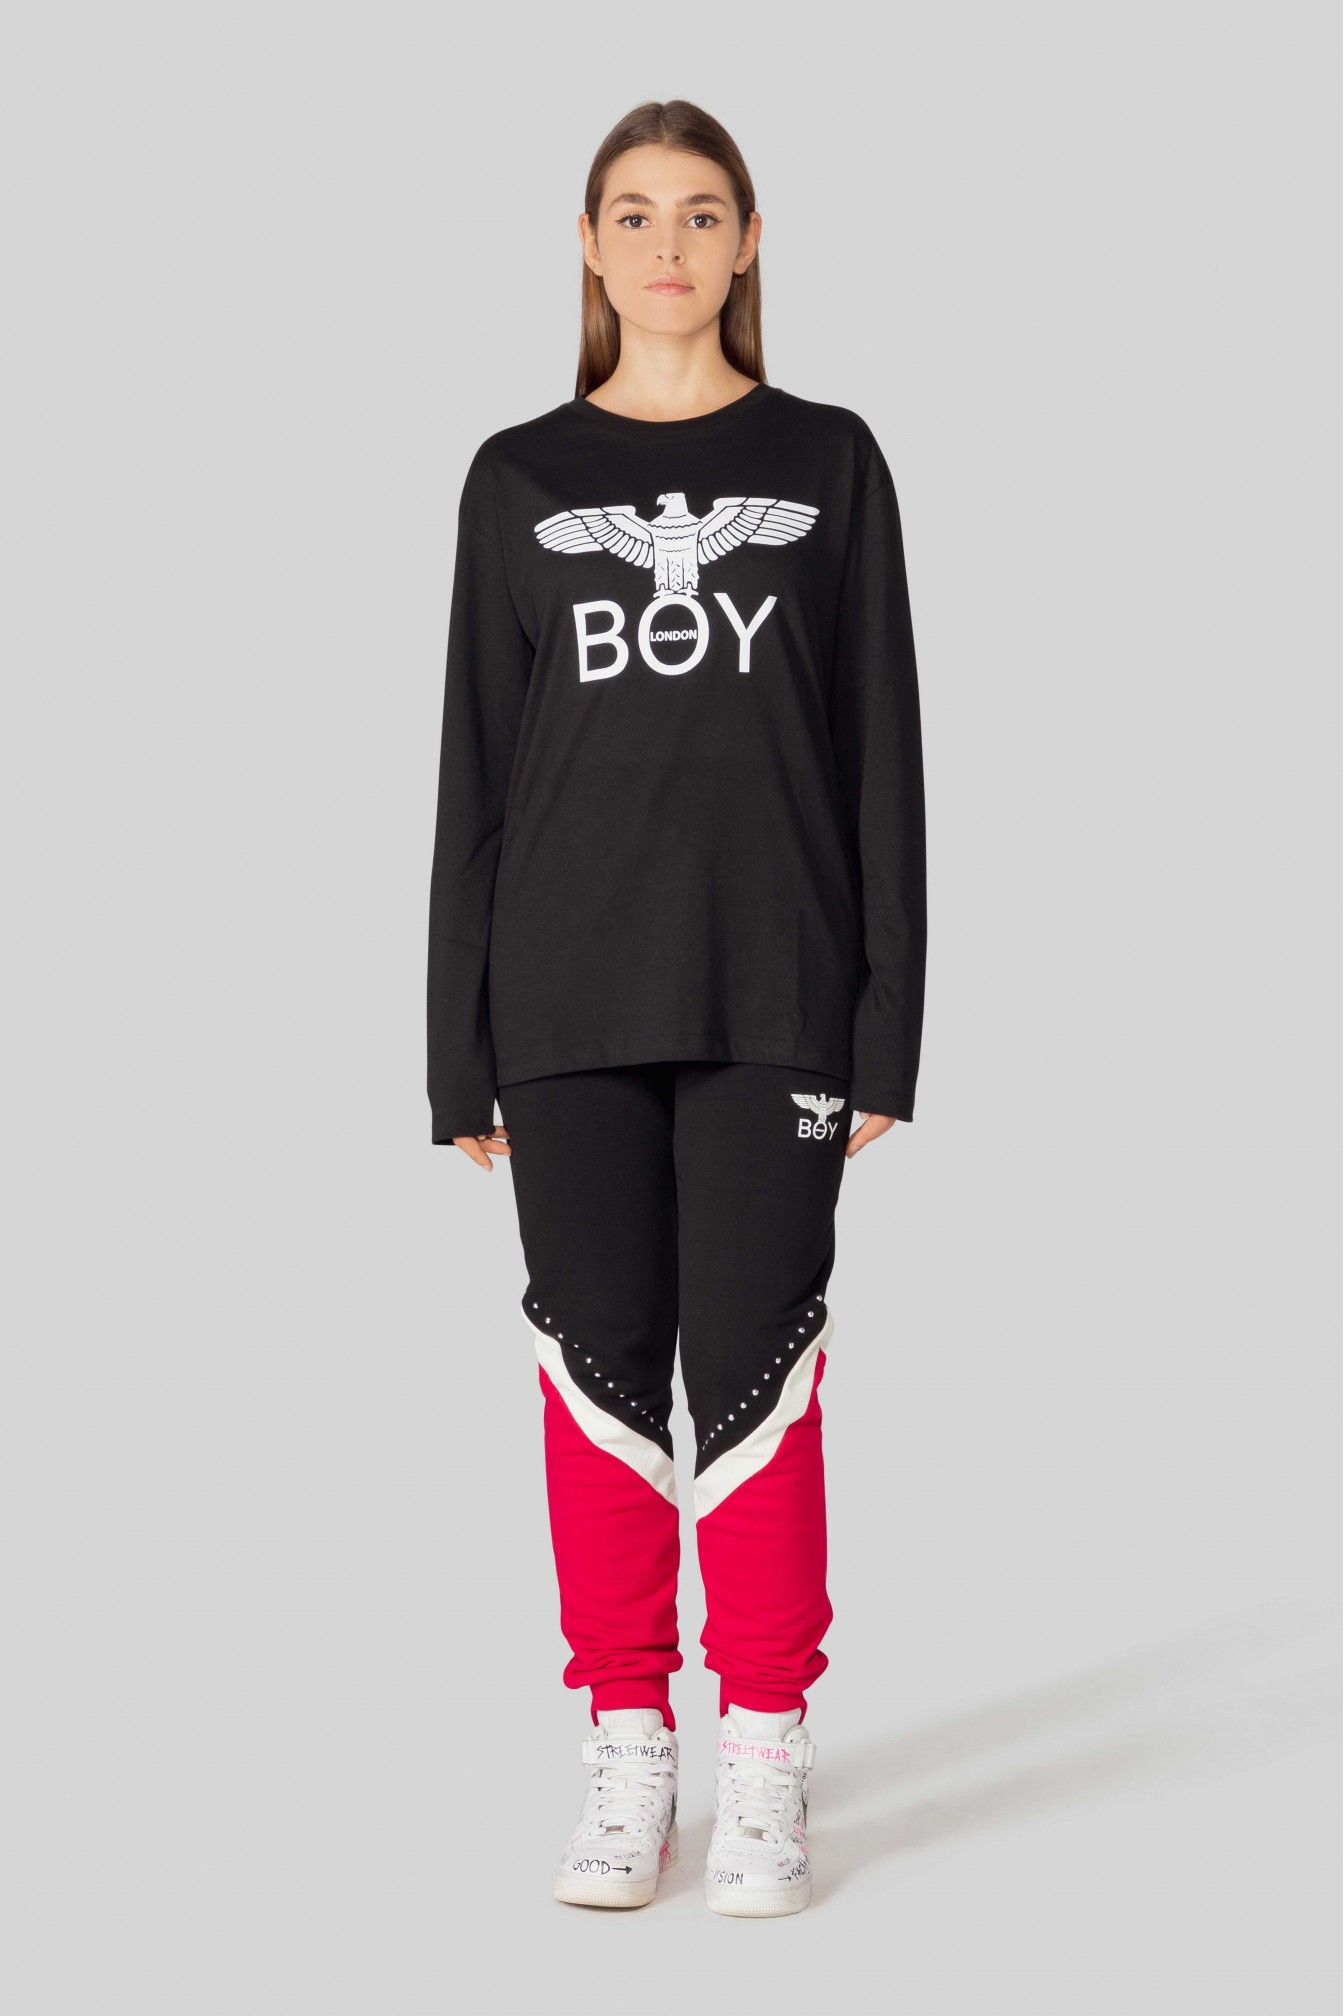 T-SHIRT - BLD2612 - BOY LONDON